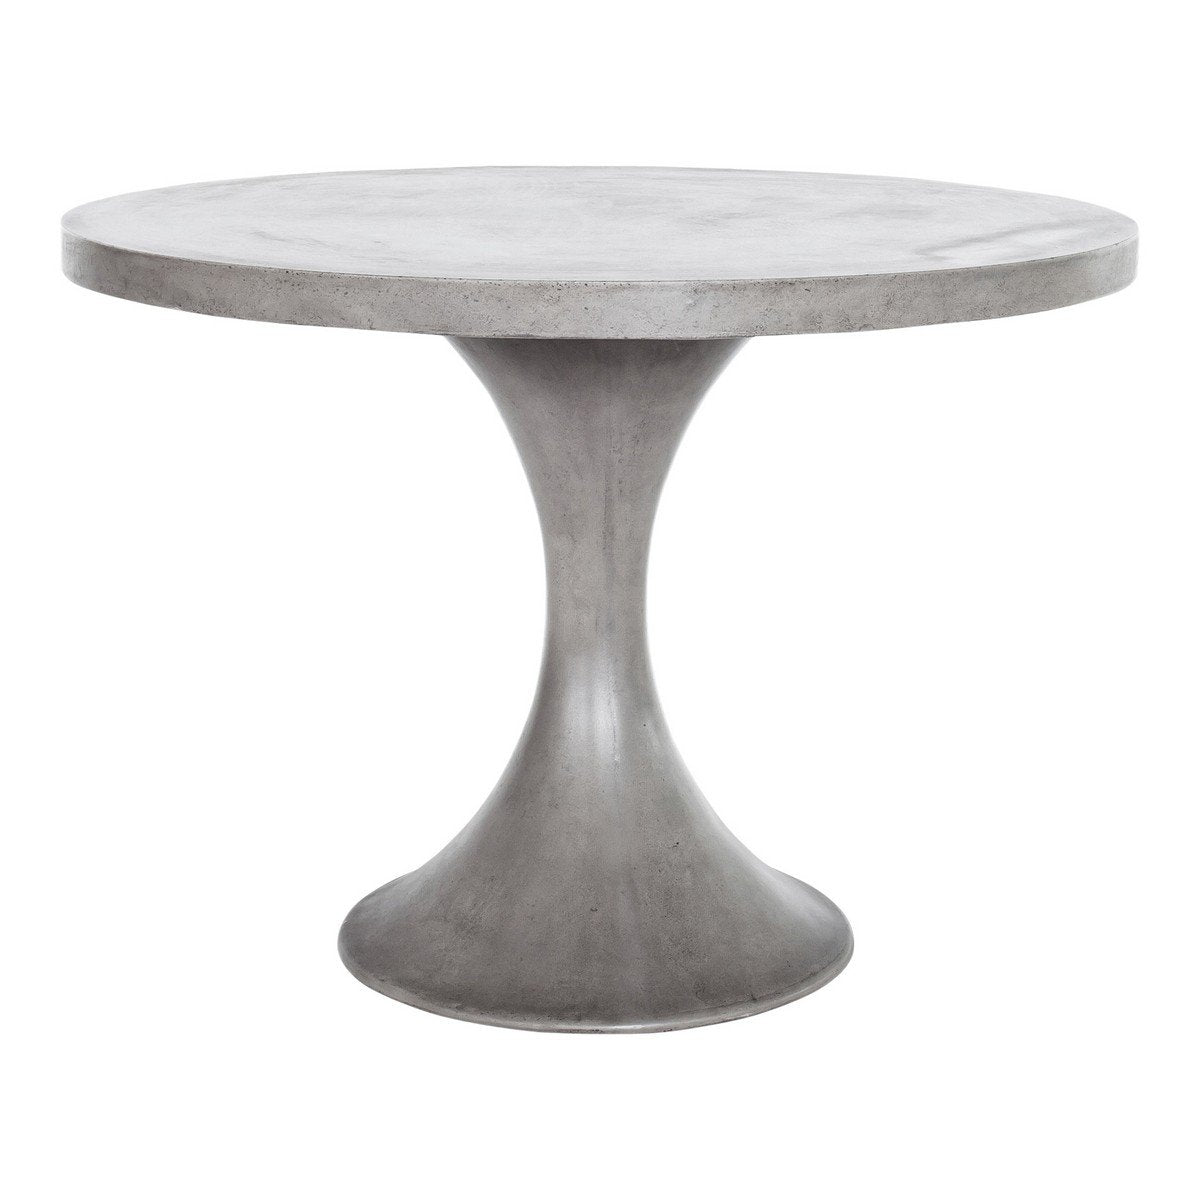 Moe's Home Collection Isadora Outdoor Dining Table - BQ-1008-25 - Moe's Home Collection - Dining Tables - Minimal And Modern - 1